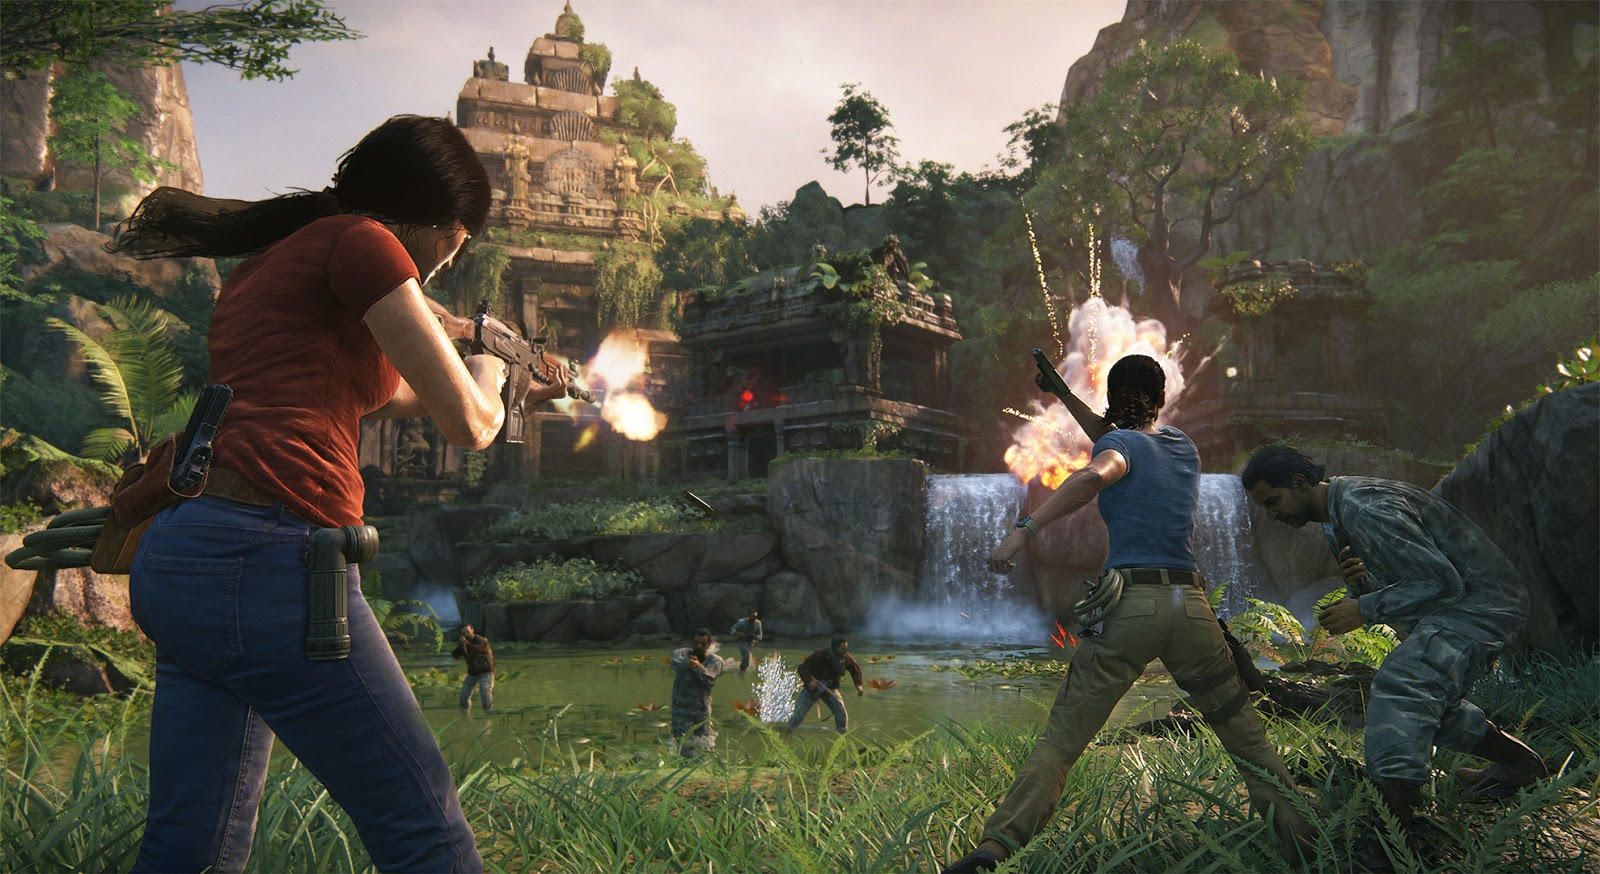 uncharted 1 pc game free download full version